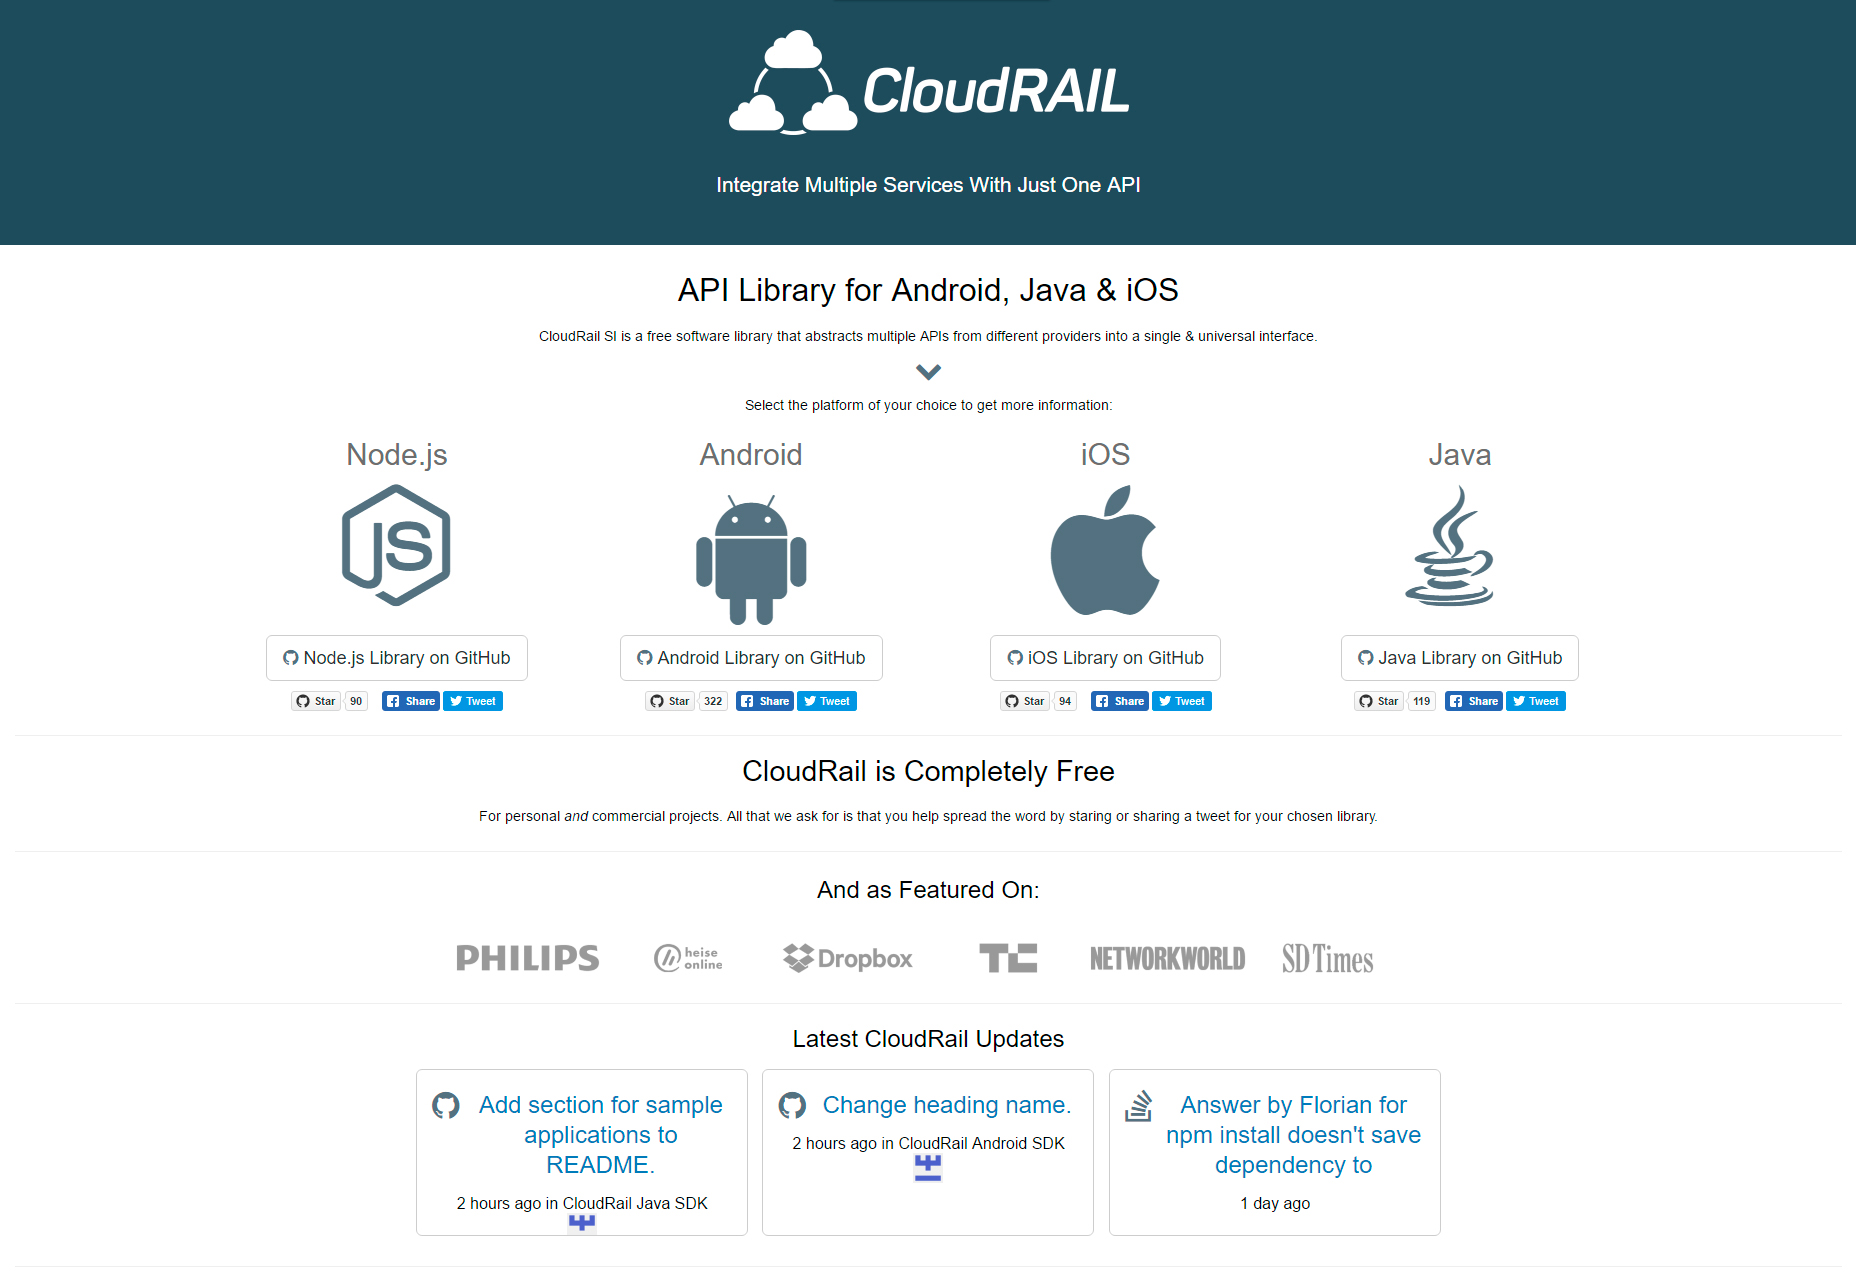 CloudRail: Multi-platform Unified API